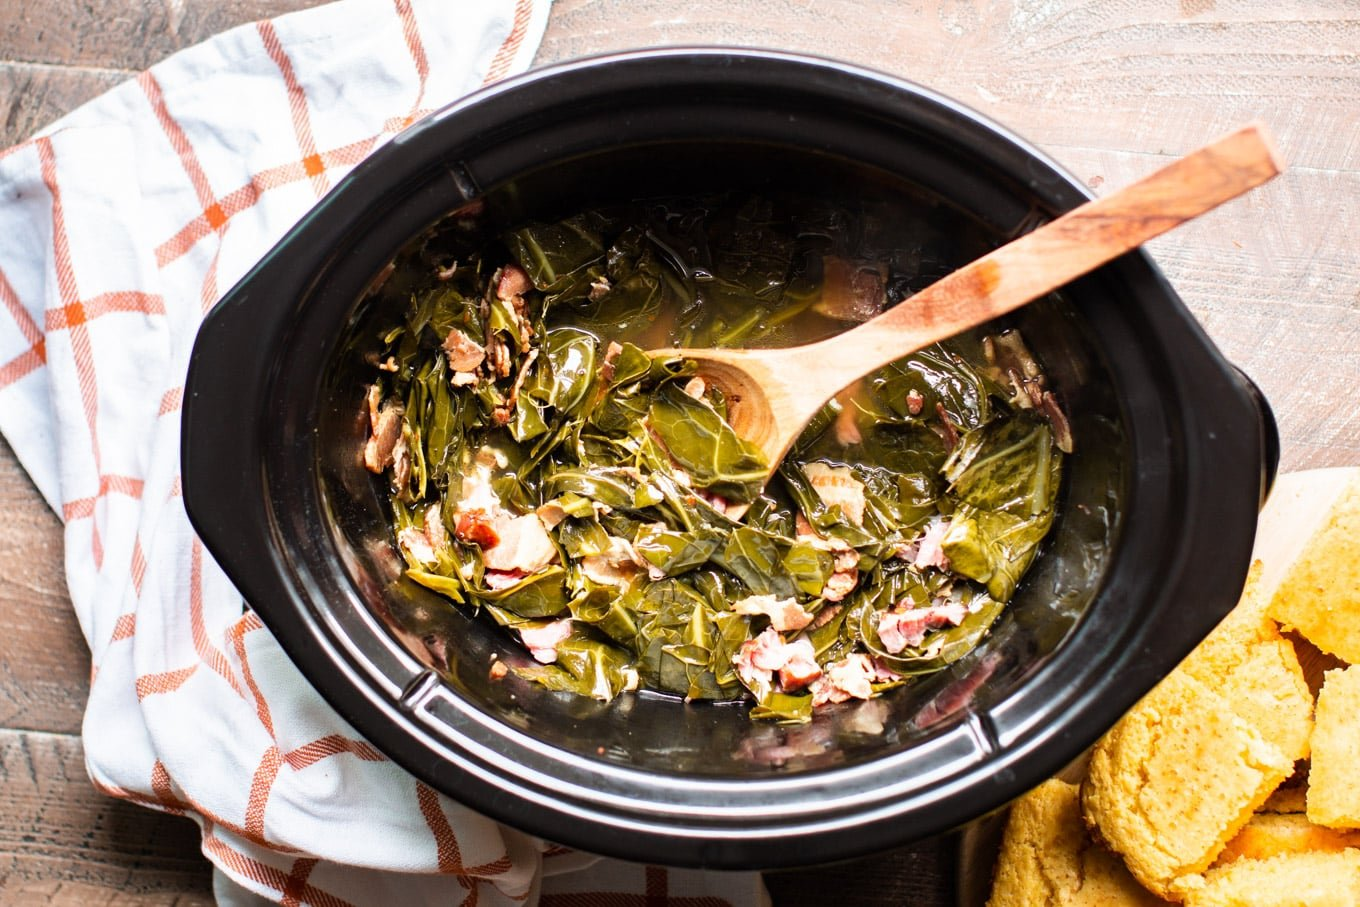 Finished collard green in slow cooker with spoon and cornbread